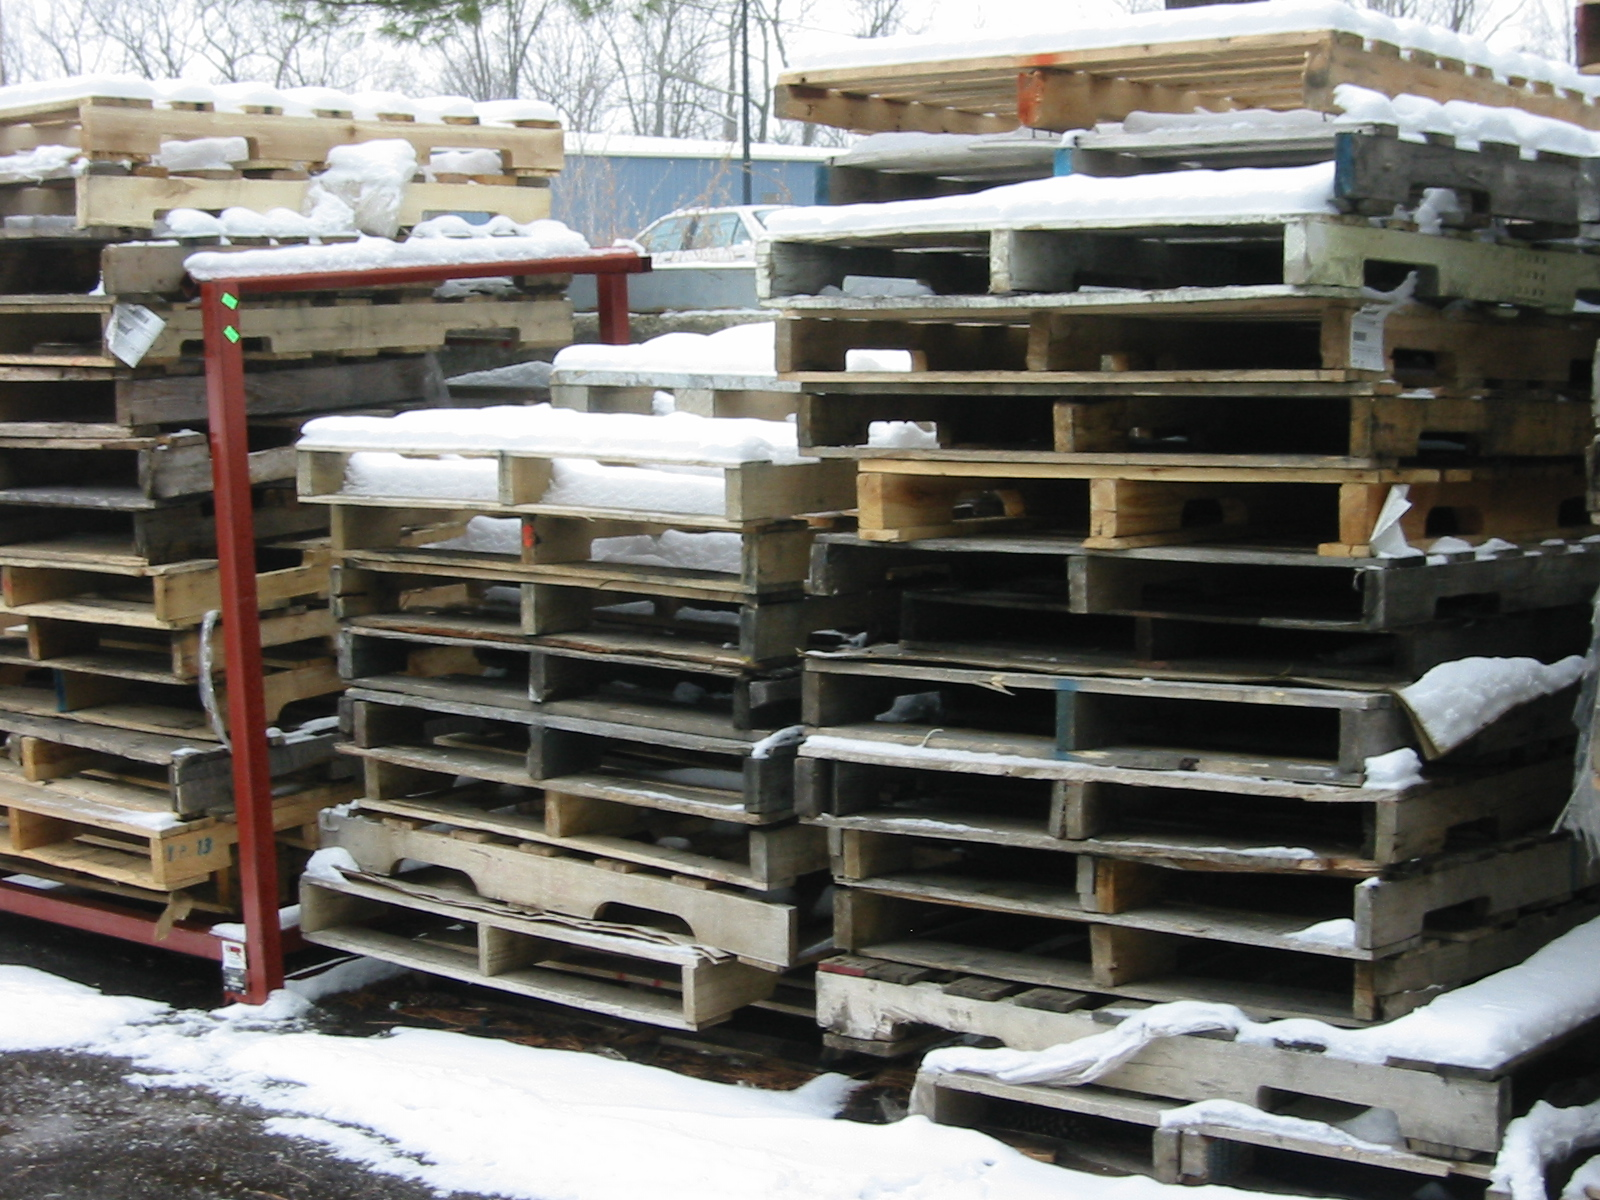 tidy_stacks_of_pallets